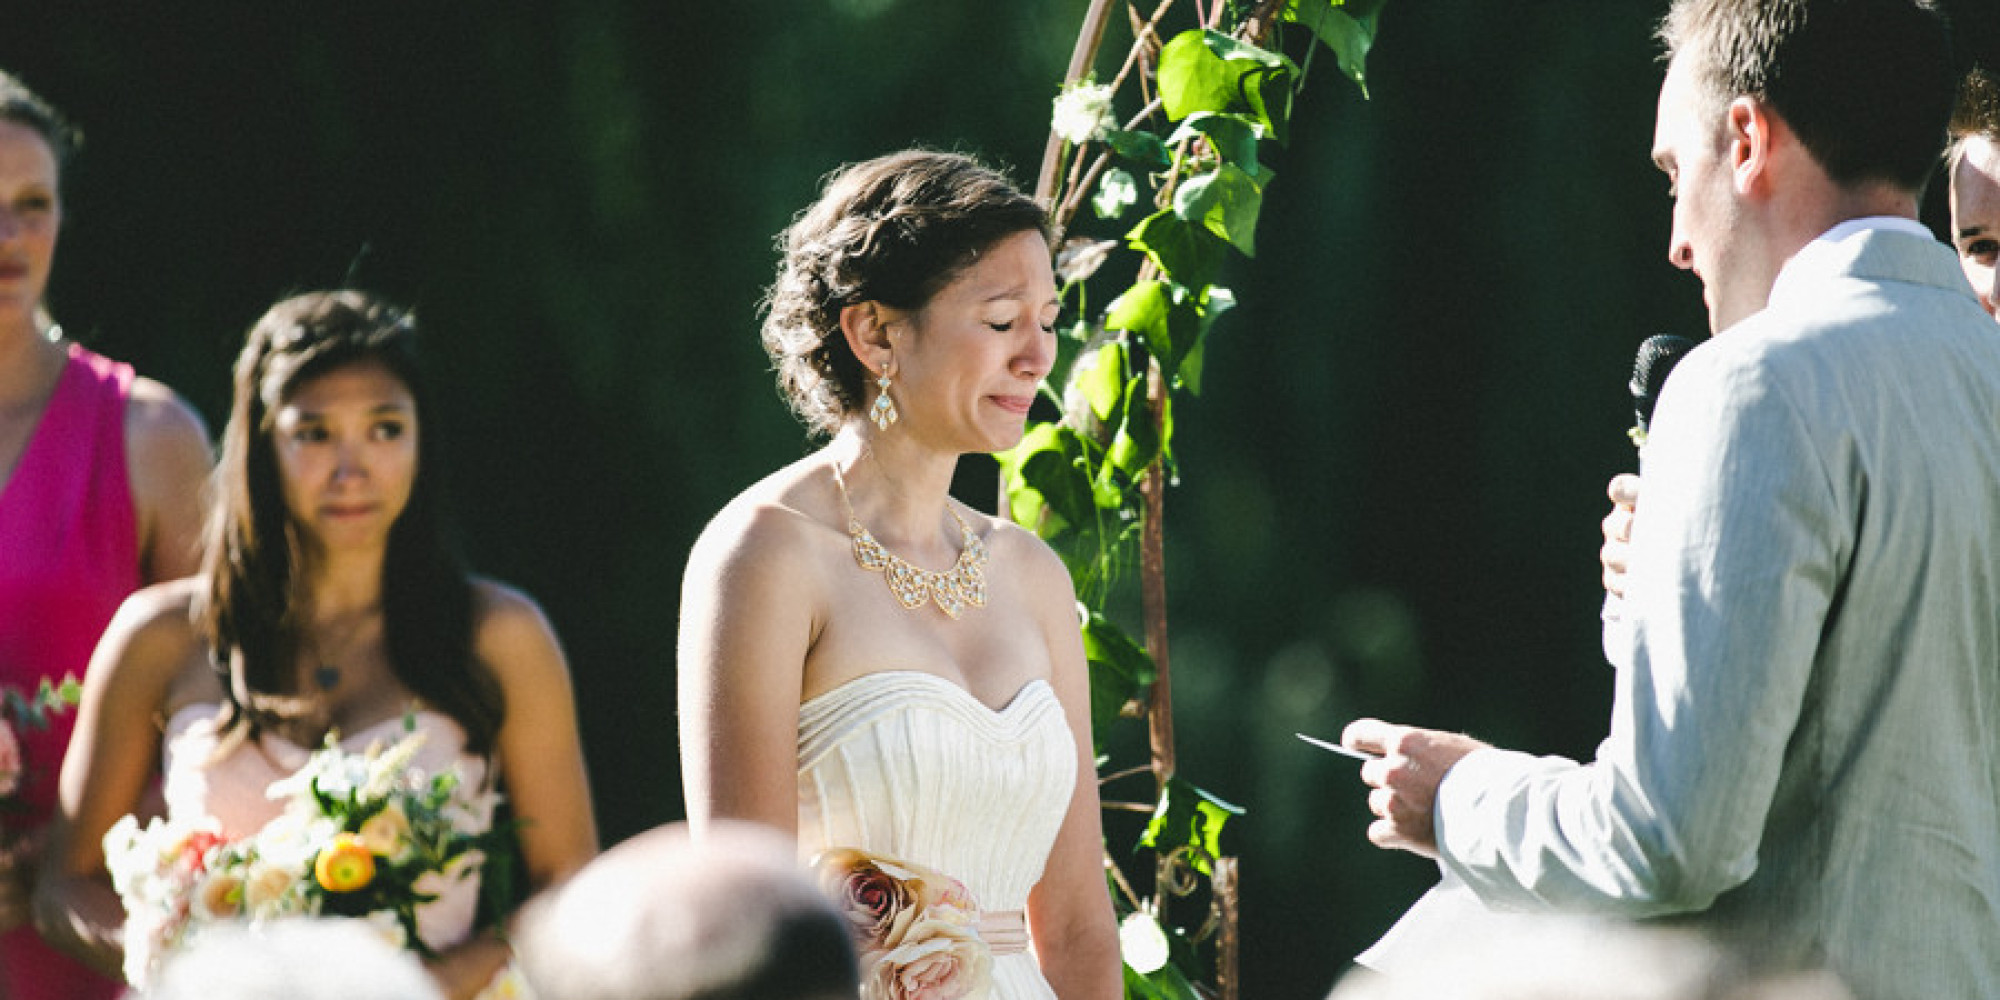 The Emotional Moment That Brought This Bride And Everyone Else To Tears